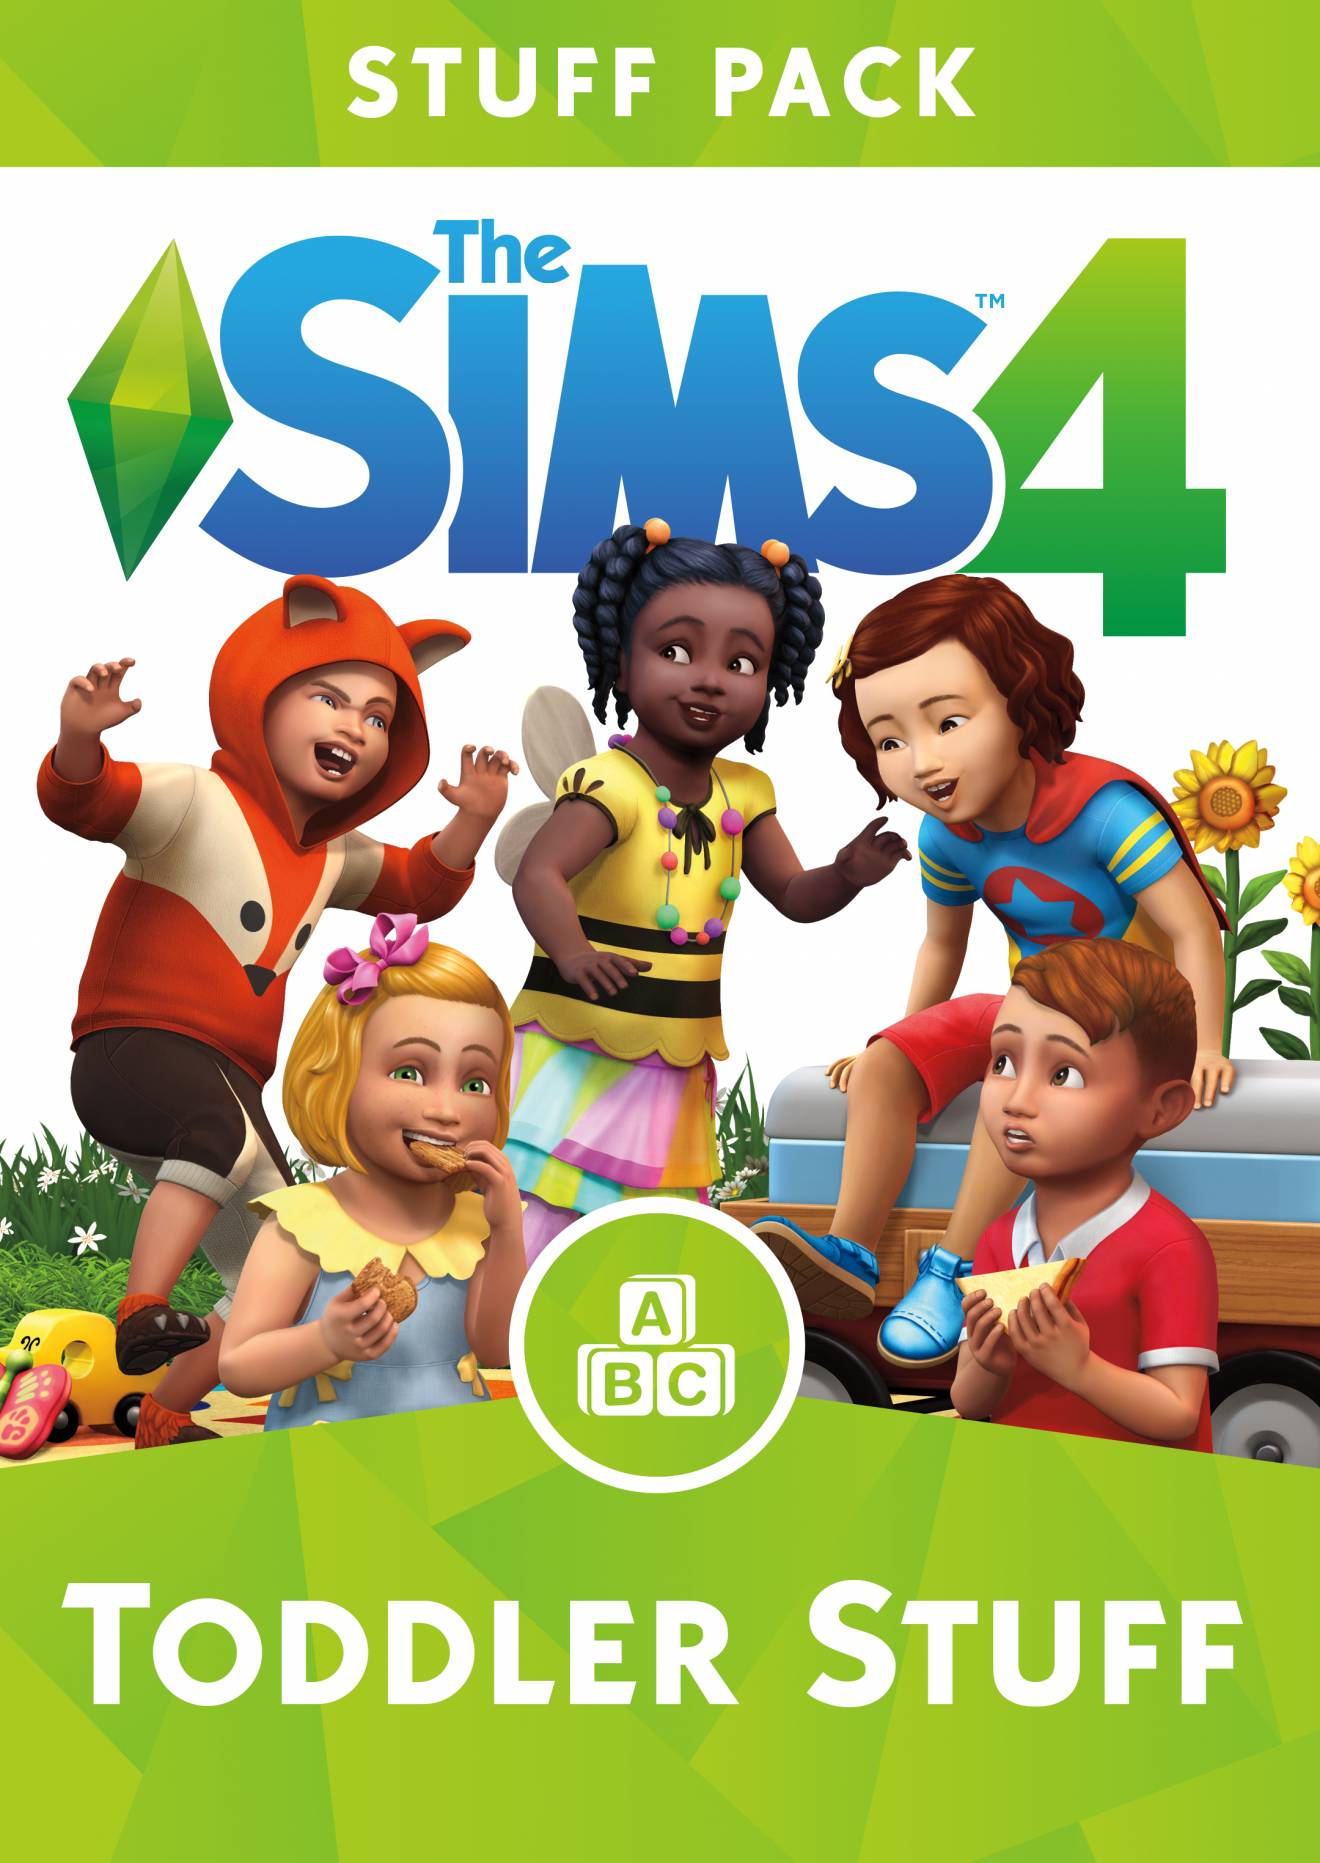 Electronic Arts The Sims 4 - Toddler Stuff PC